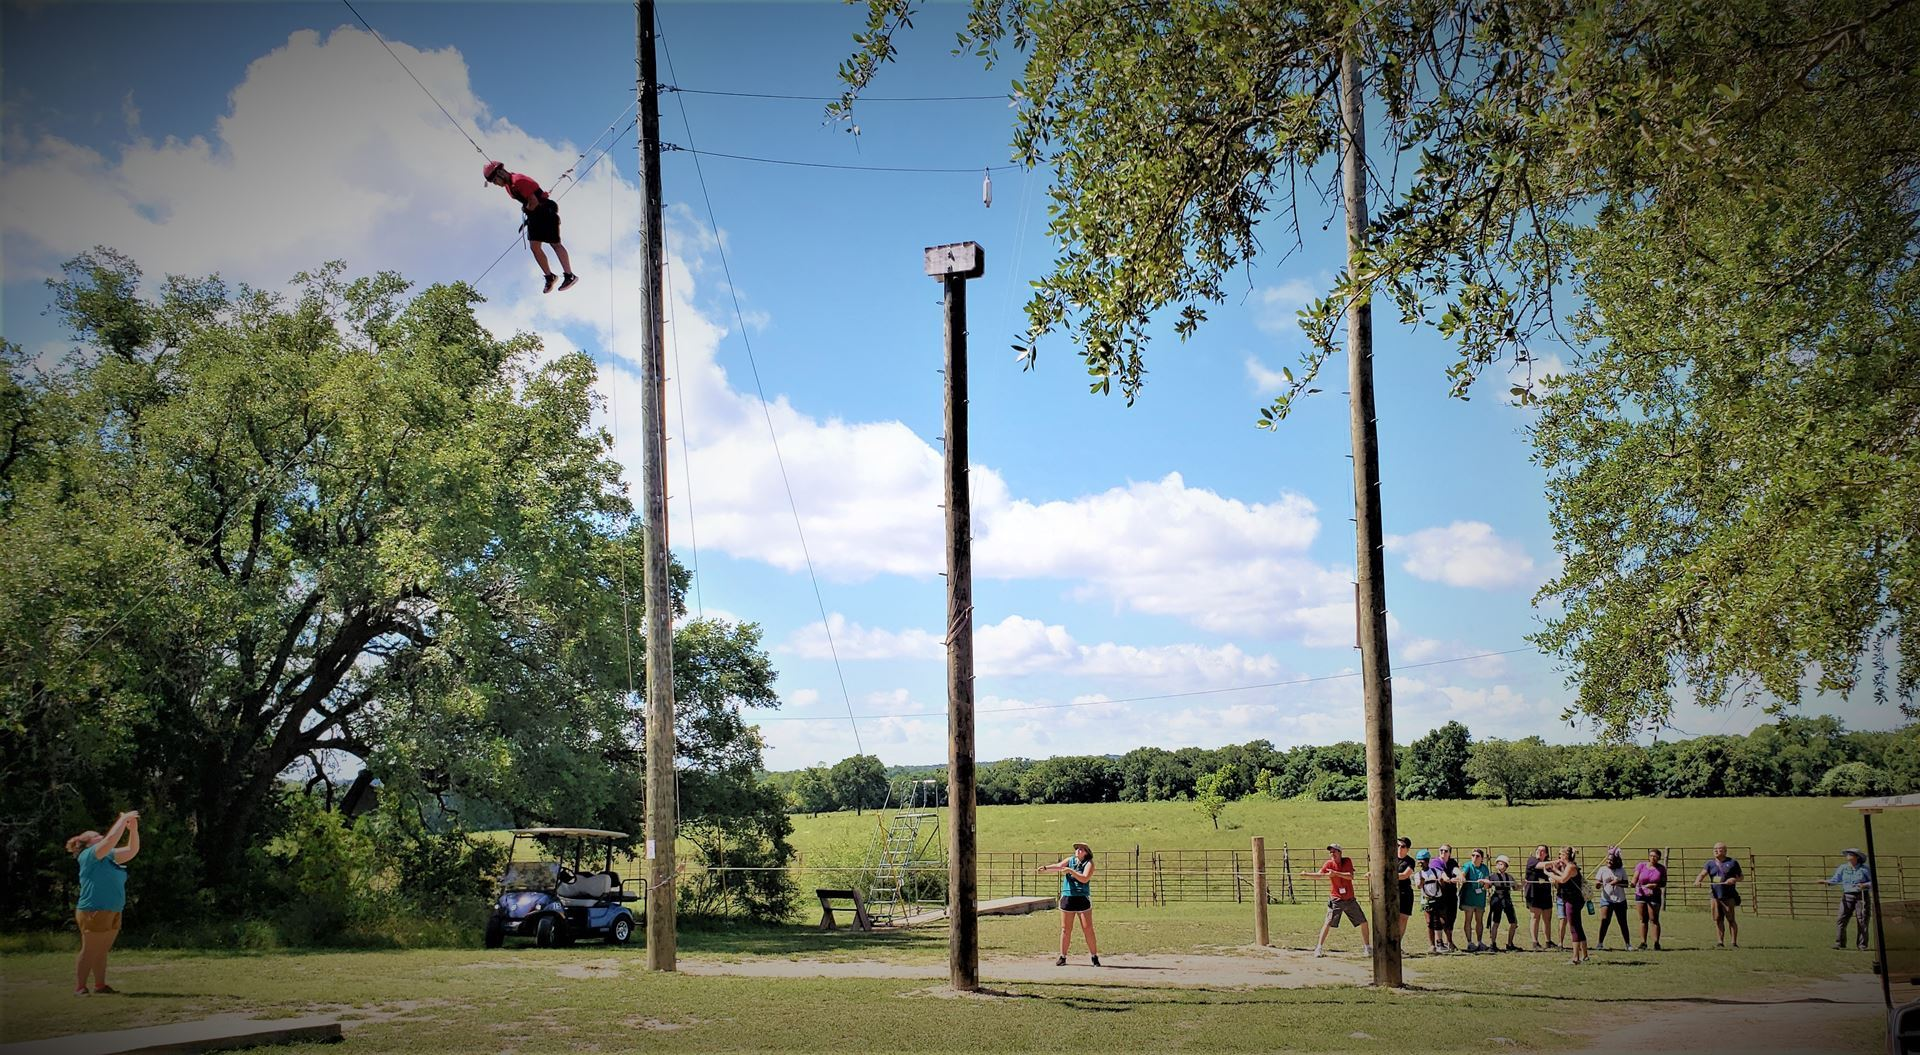 A team of Jrs, CNs and Camp Staff work together to pull a Jr 40-ft high in the sky by a rope pulley system. When he is ready, he'll let go and SWING!